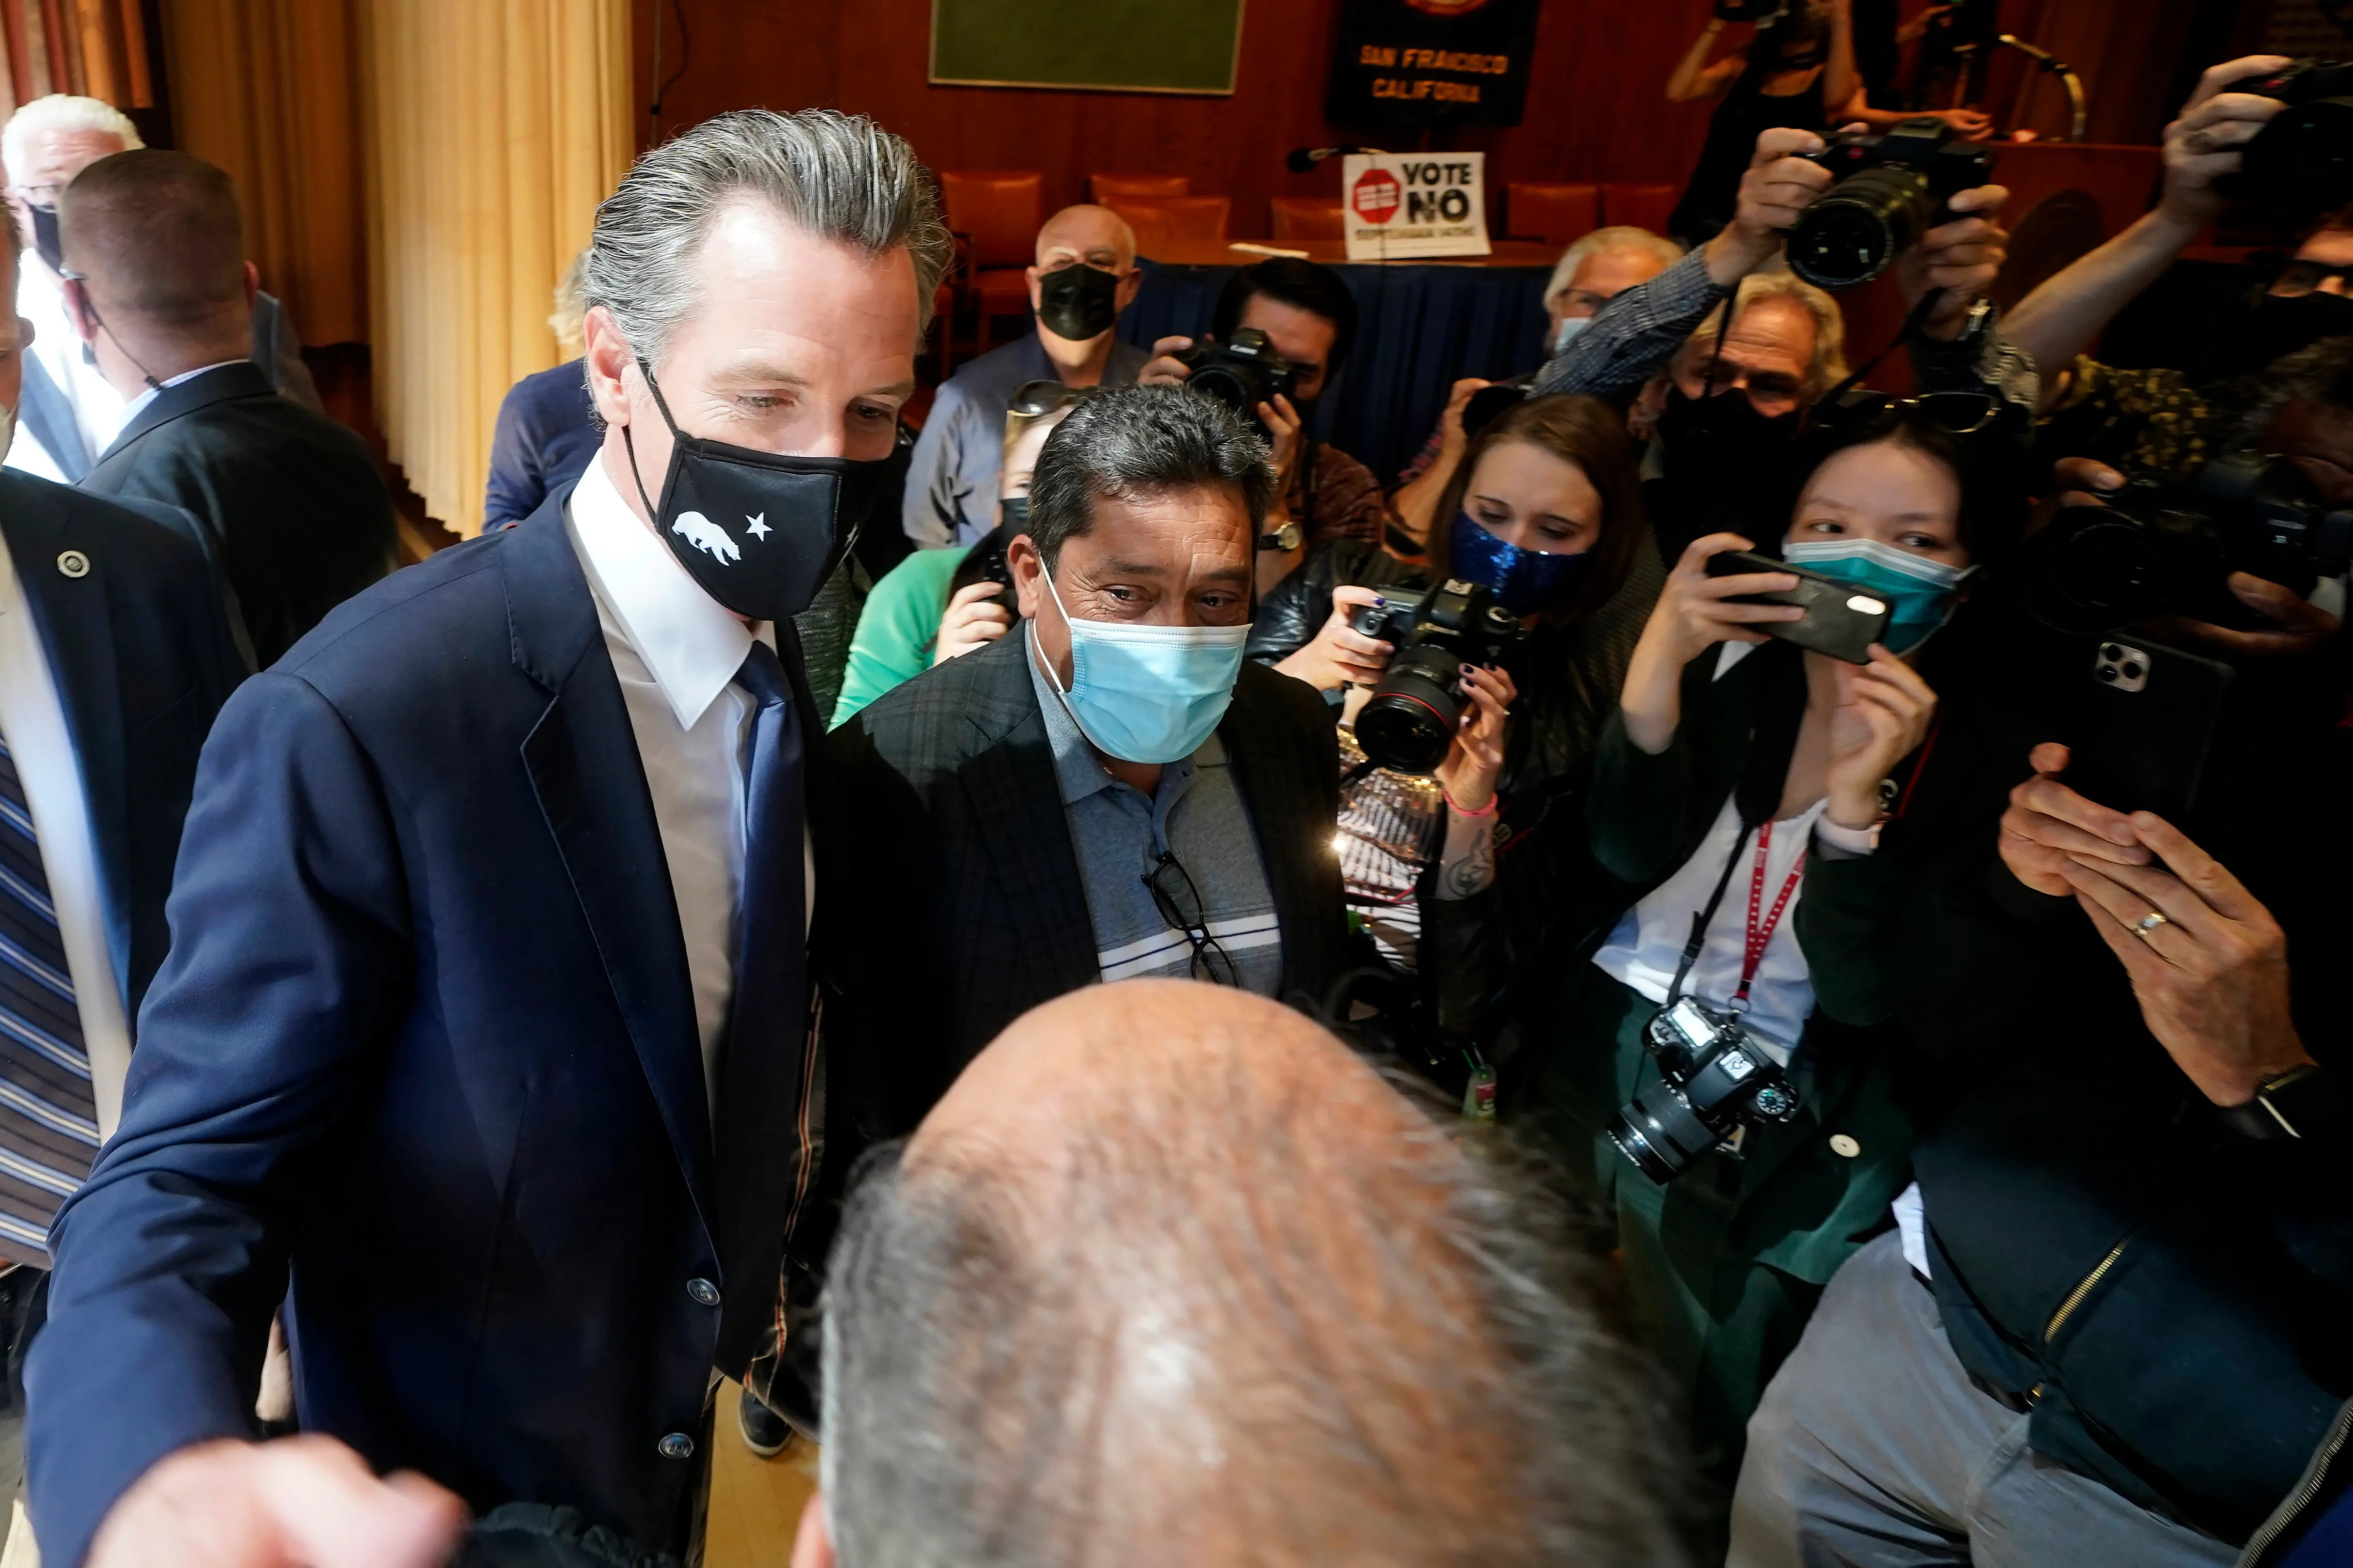 Governor Gavin Newsom greets supporters after speaking to volunteers in San Francisco on Tuesday.